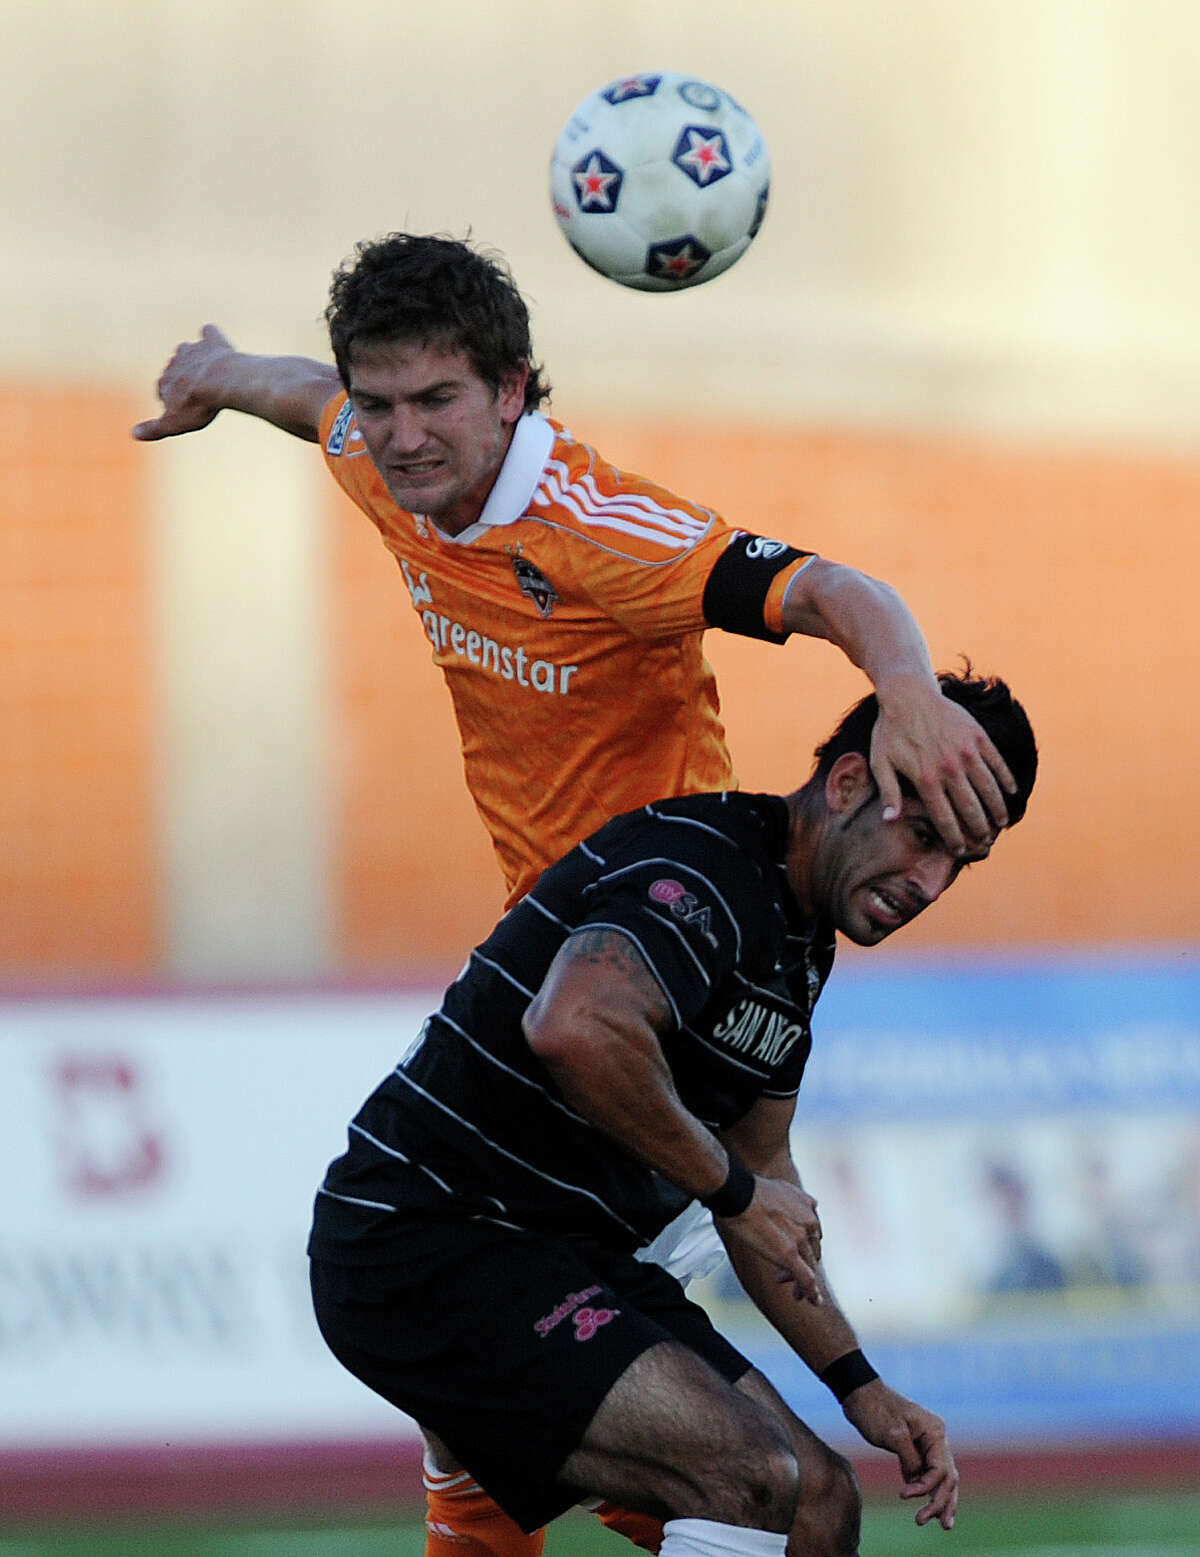 Esteban Bayona of the San Antonio Scorpions (bottom) battles with Bobby Boswell of the Houston Dynamo during U.S. Open Cup match action at Heroes Stadium on Tuesday, May 29, 2012.